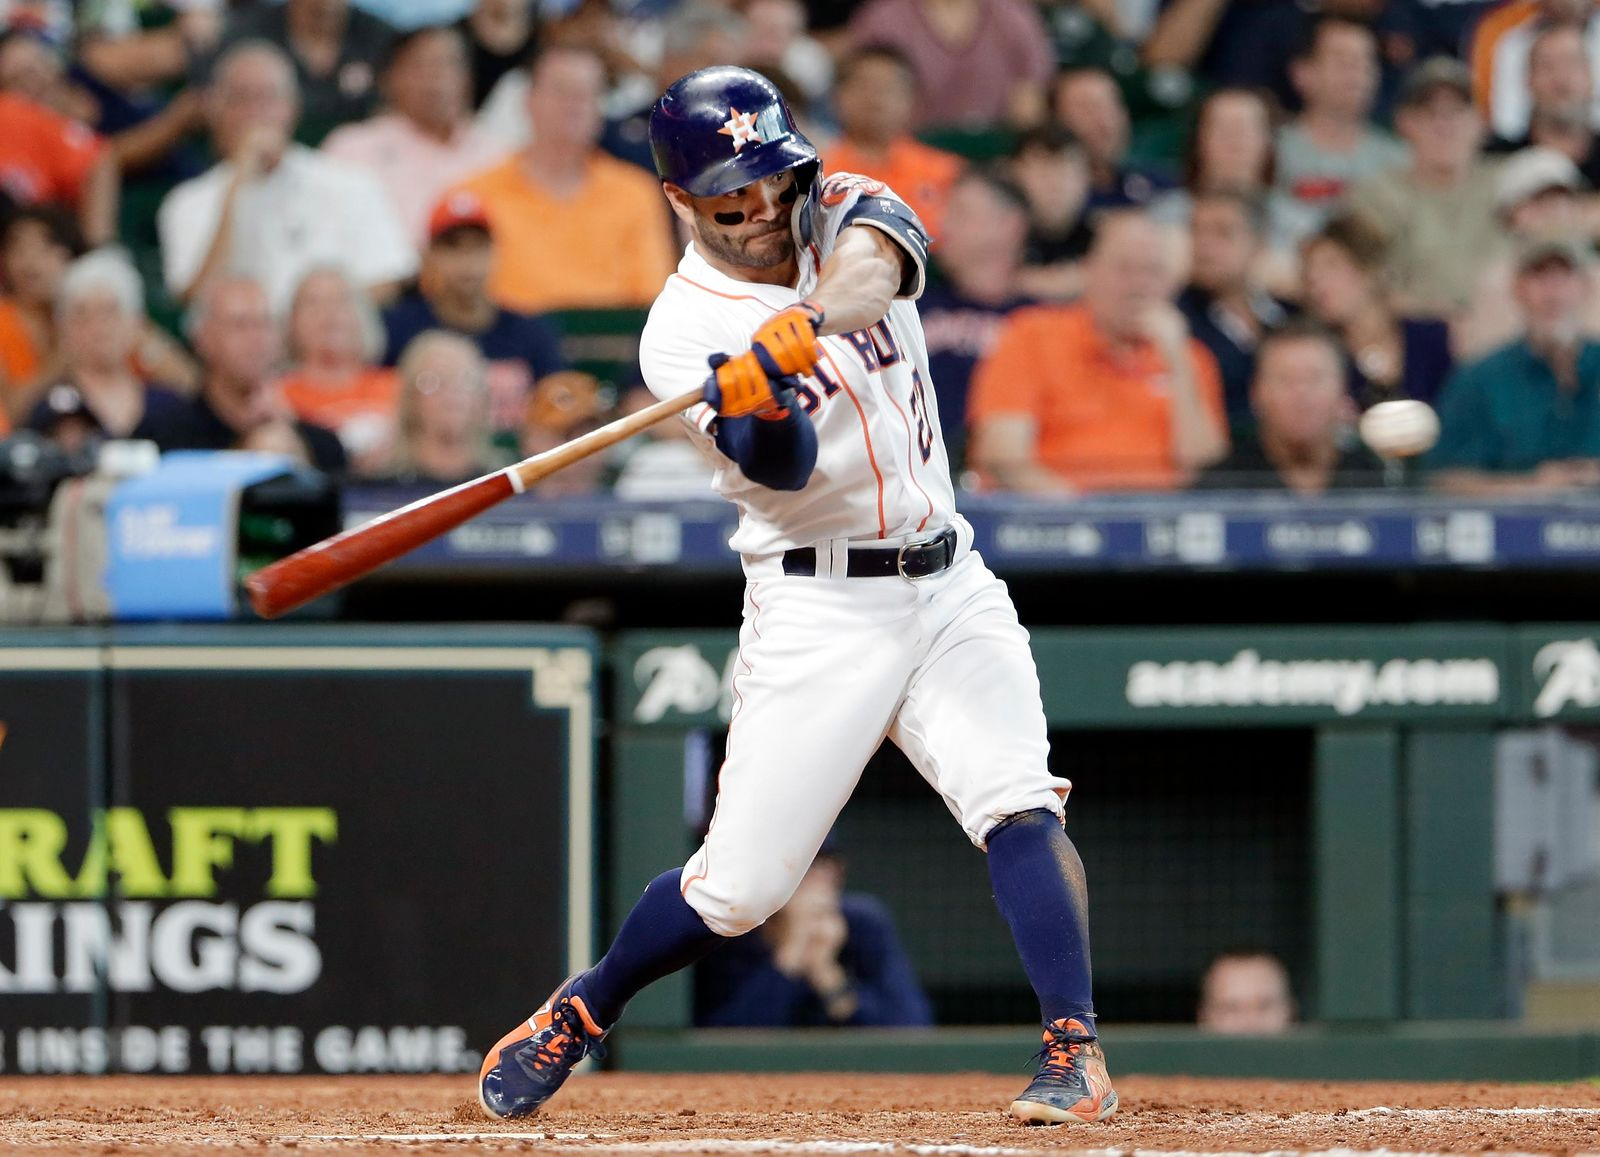 Houston Astros' Jose Altuve hits a home run during the sixth inning of a baseball game against the Tampa Bay Rays, Thursday, Aug. 29, 2019, in Houston. (AP Photo/Michael Wyke)